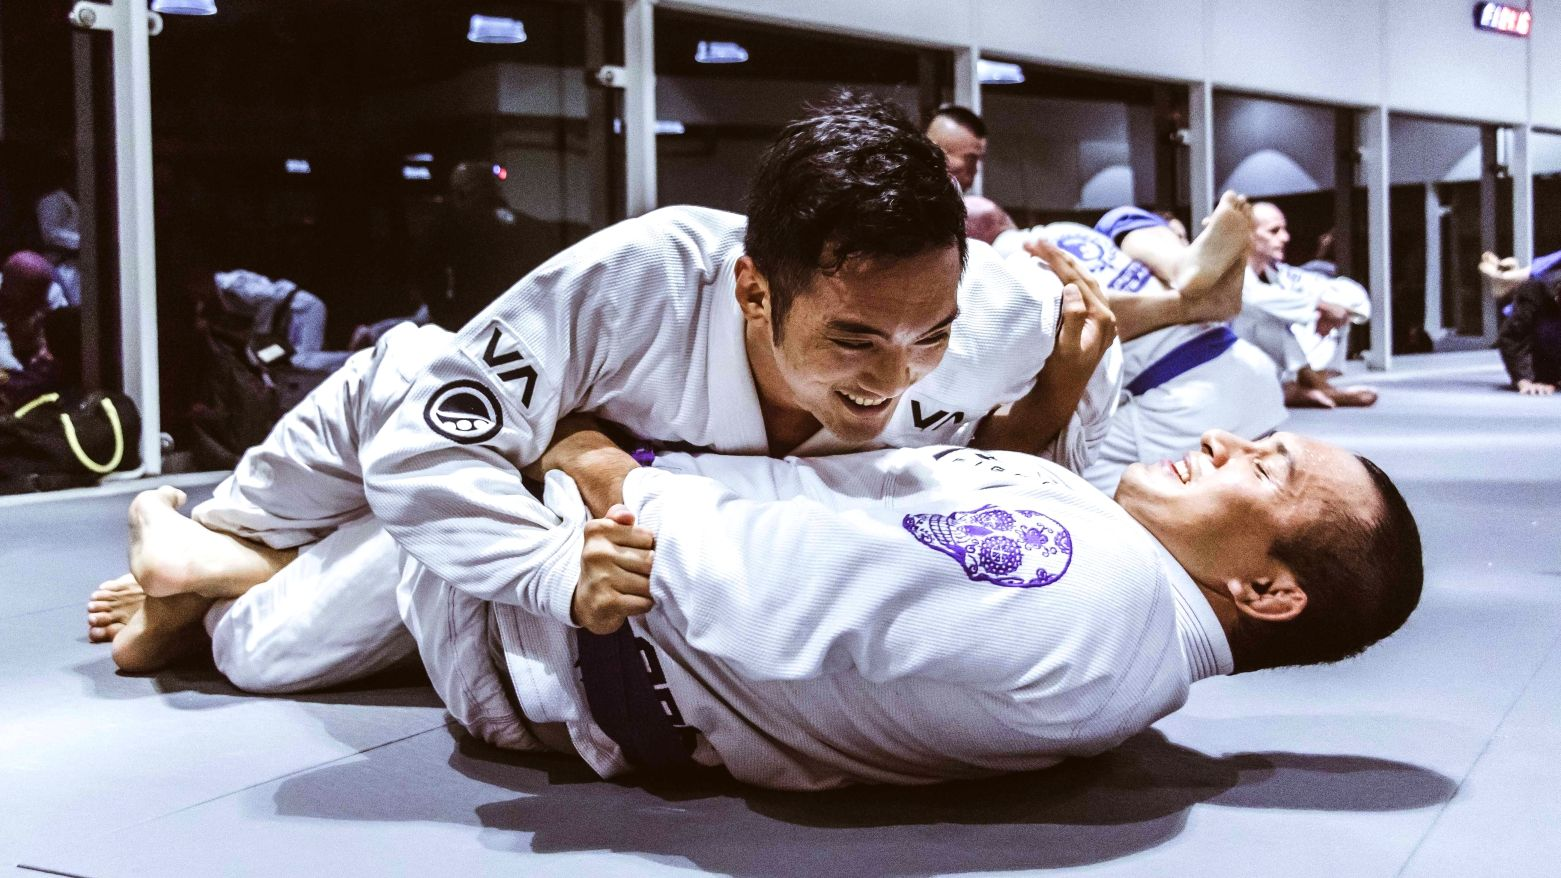 Two people smiling while training BJJ